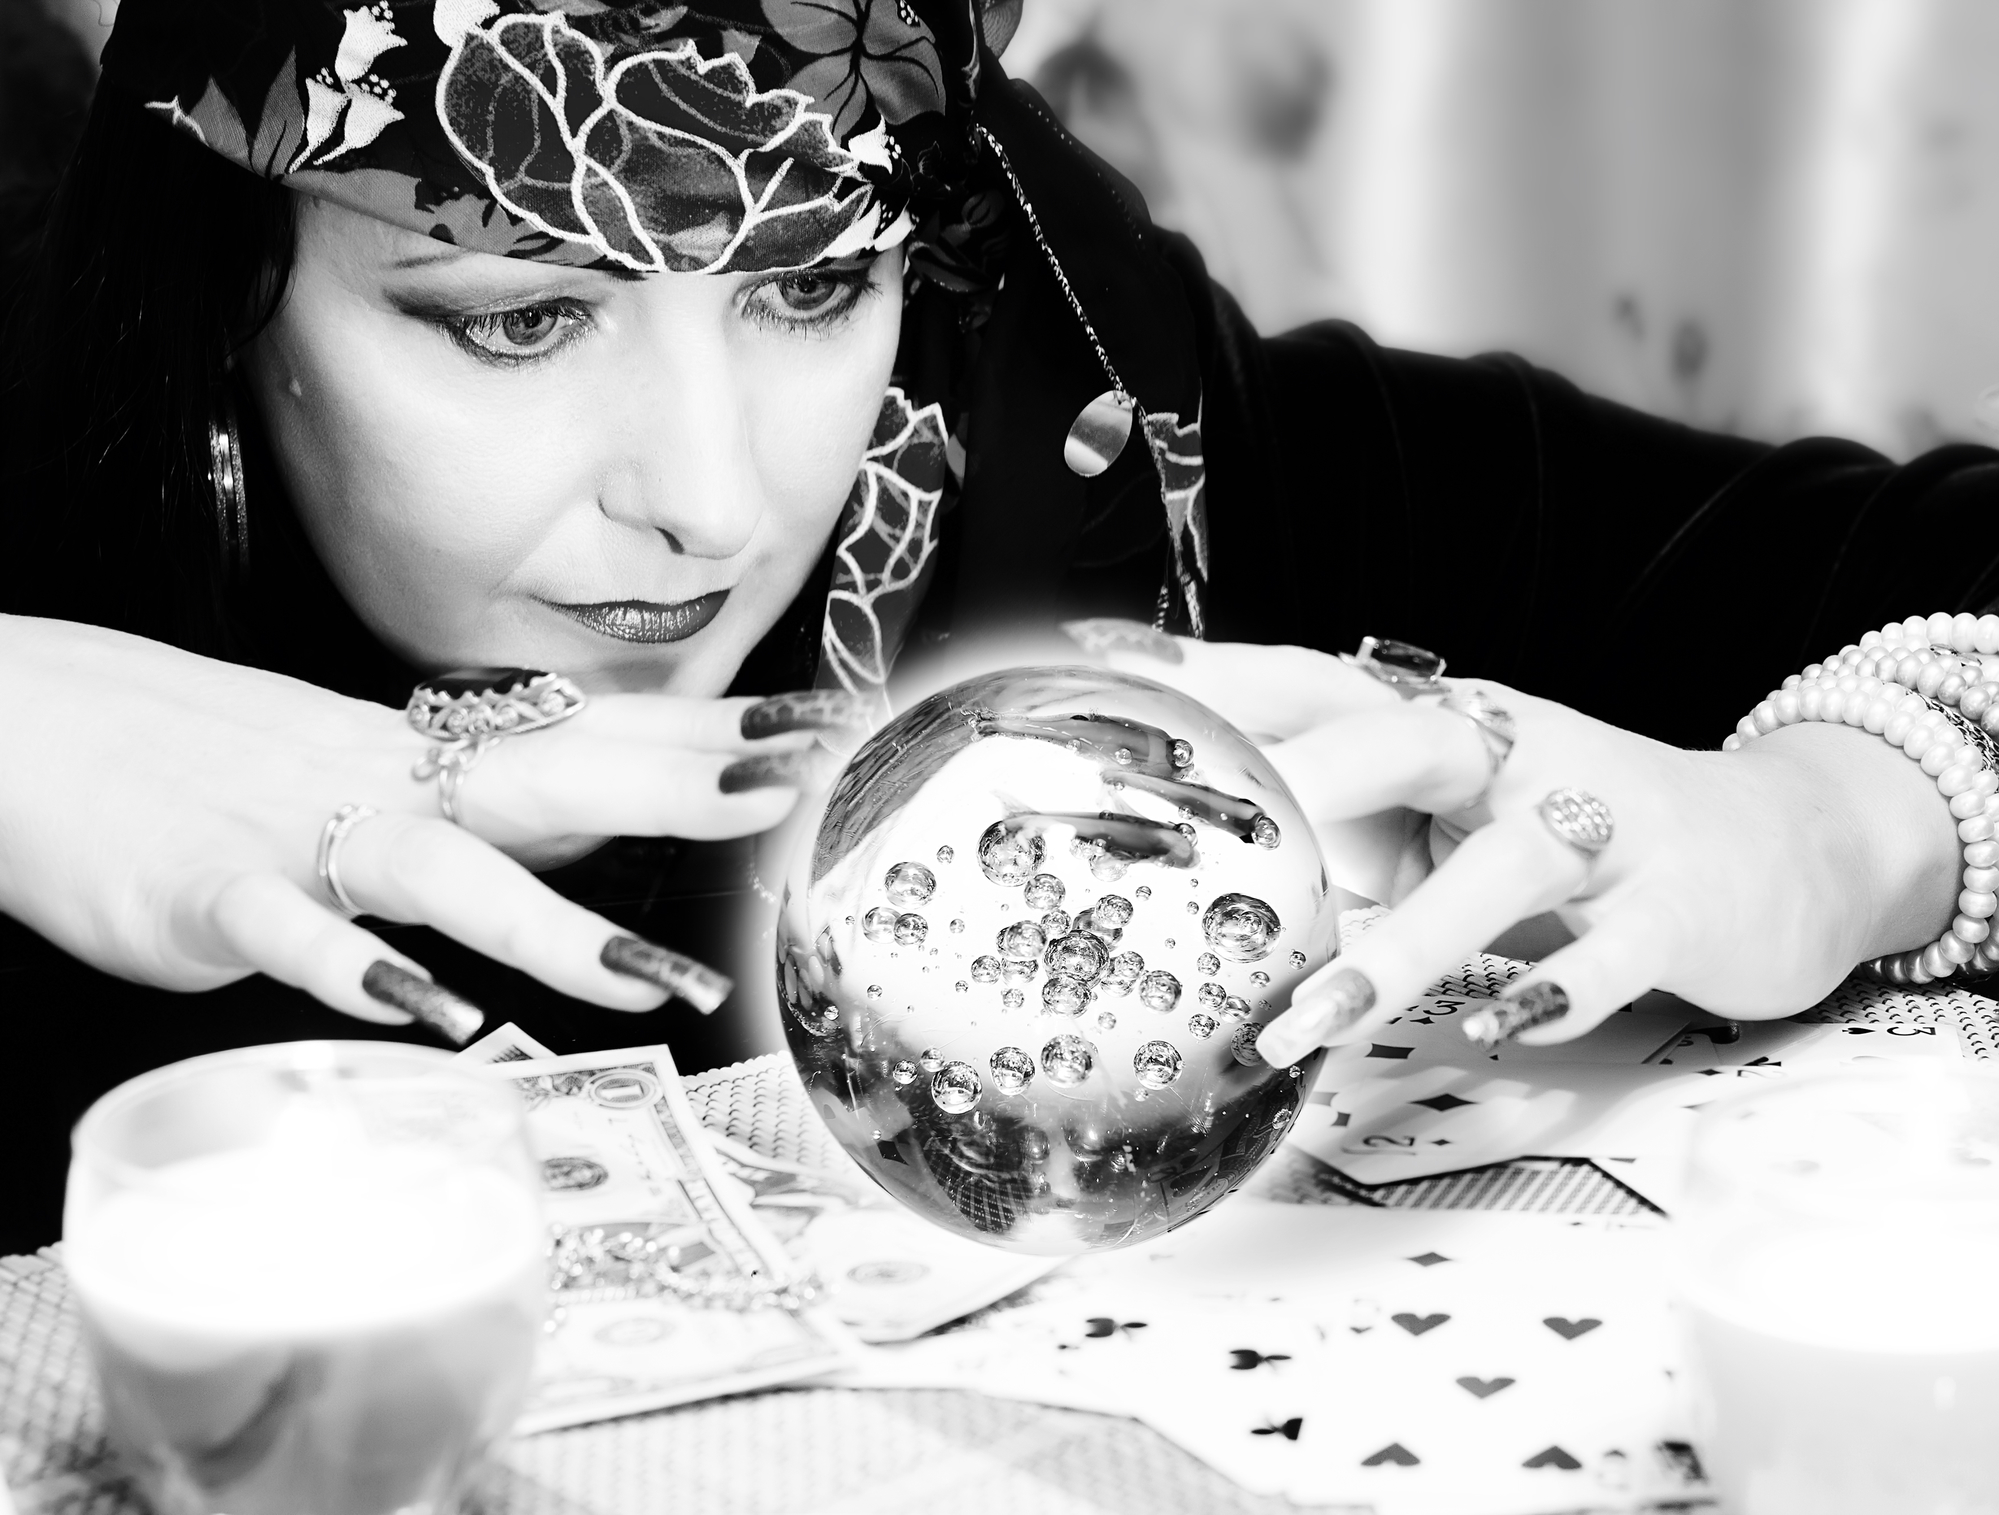 What to do and what not to do when giving a good psychic reading